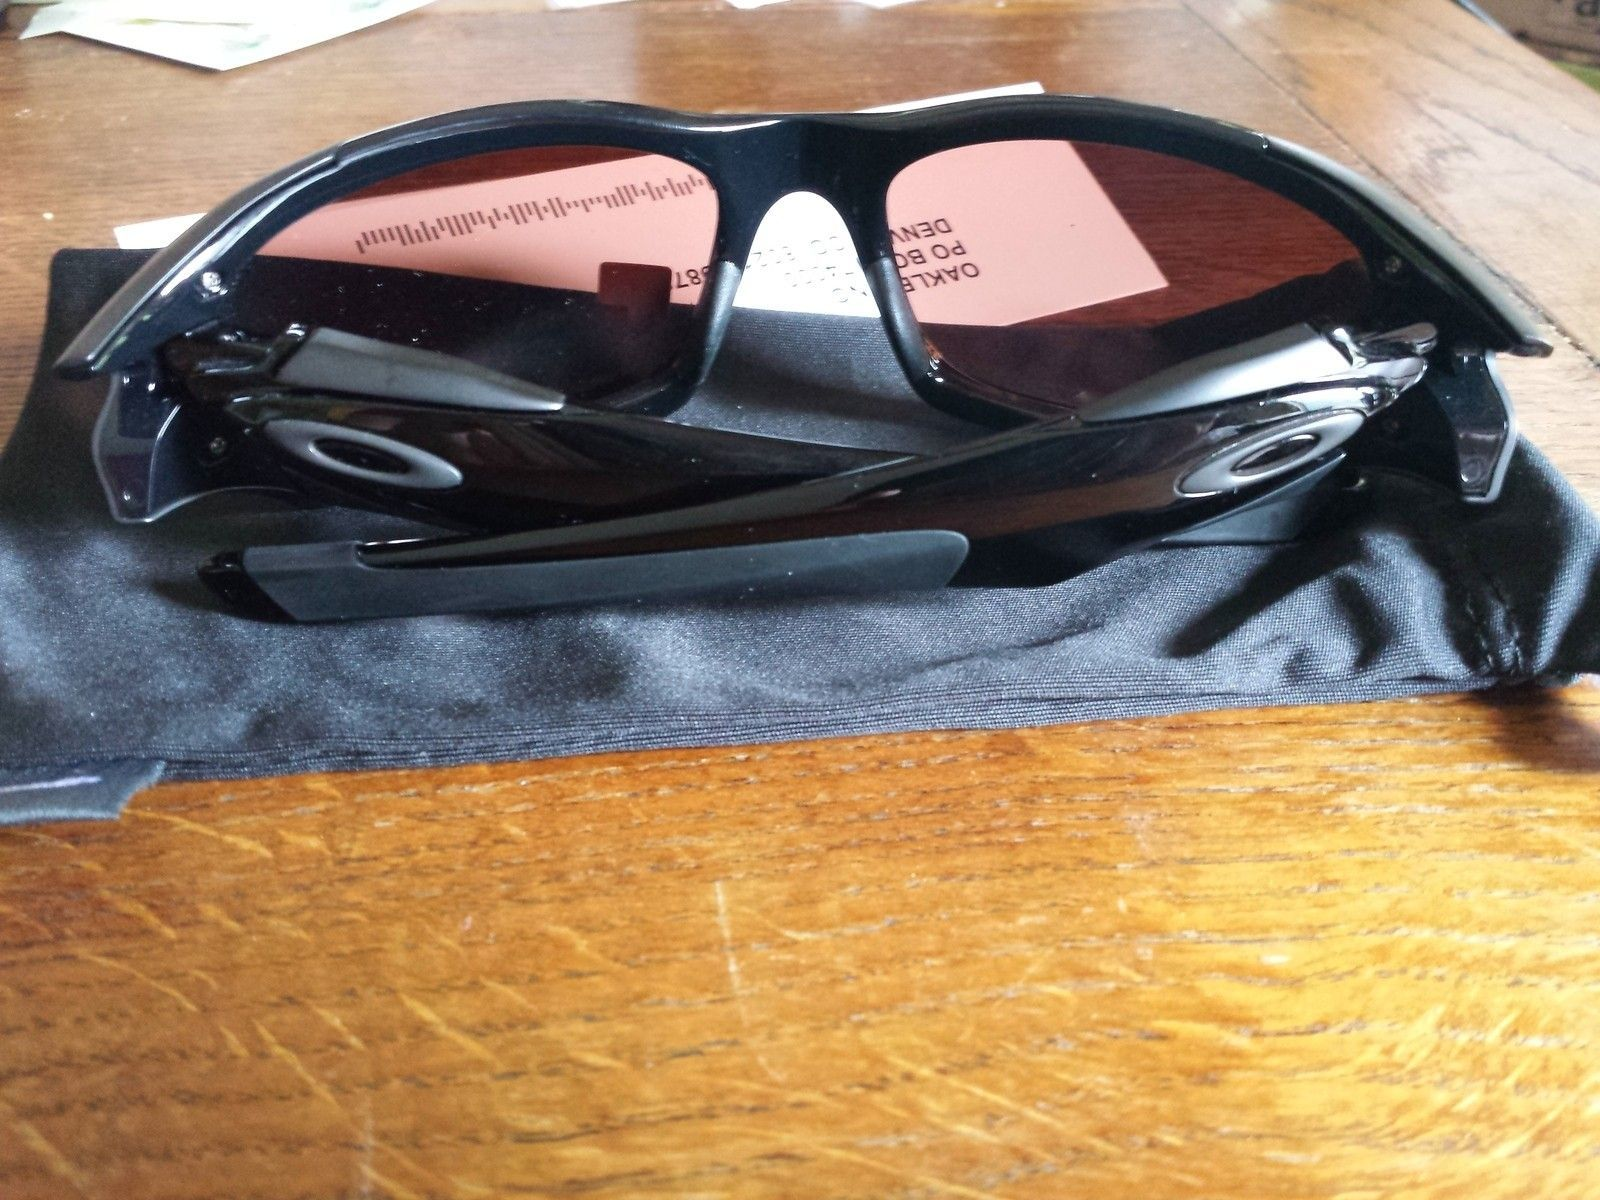 BNIB Pit Boss 2, polished black - uploadfromtaptalk1436373886891.jpg